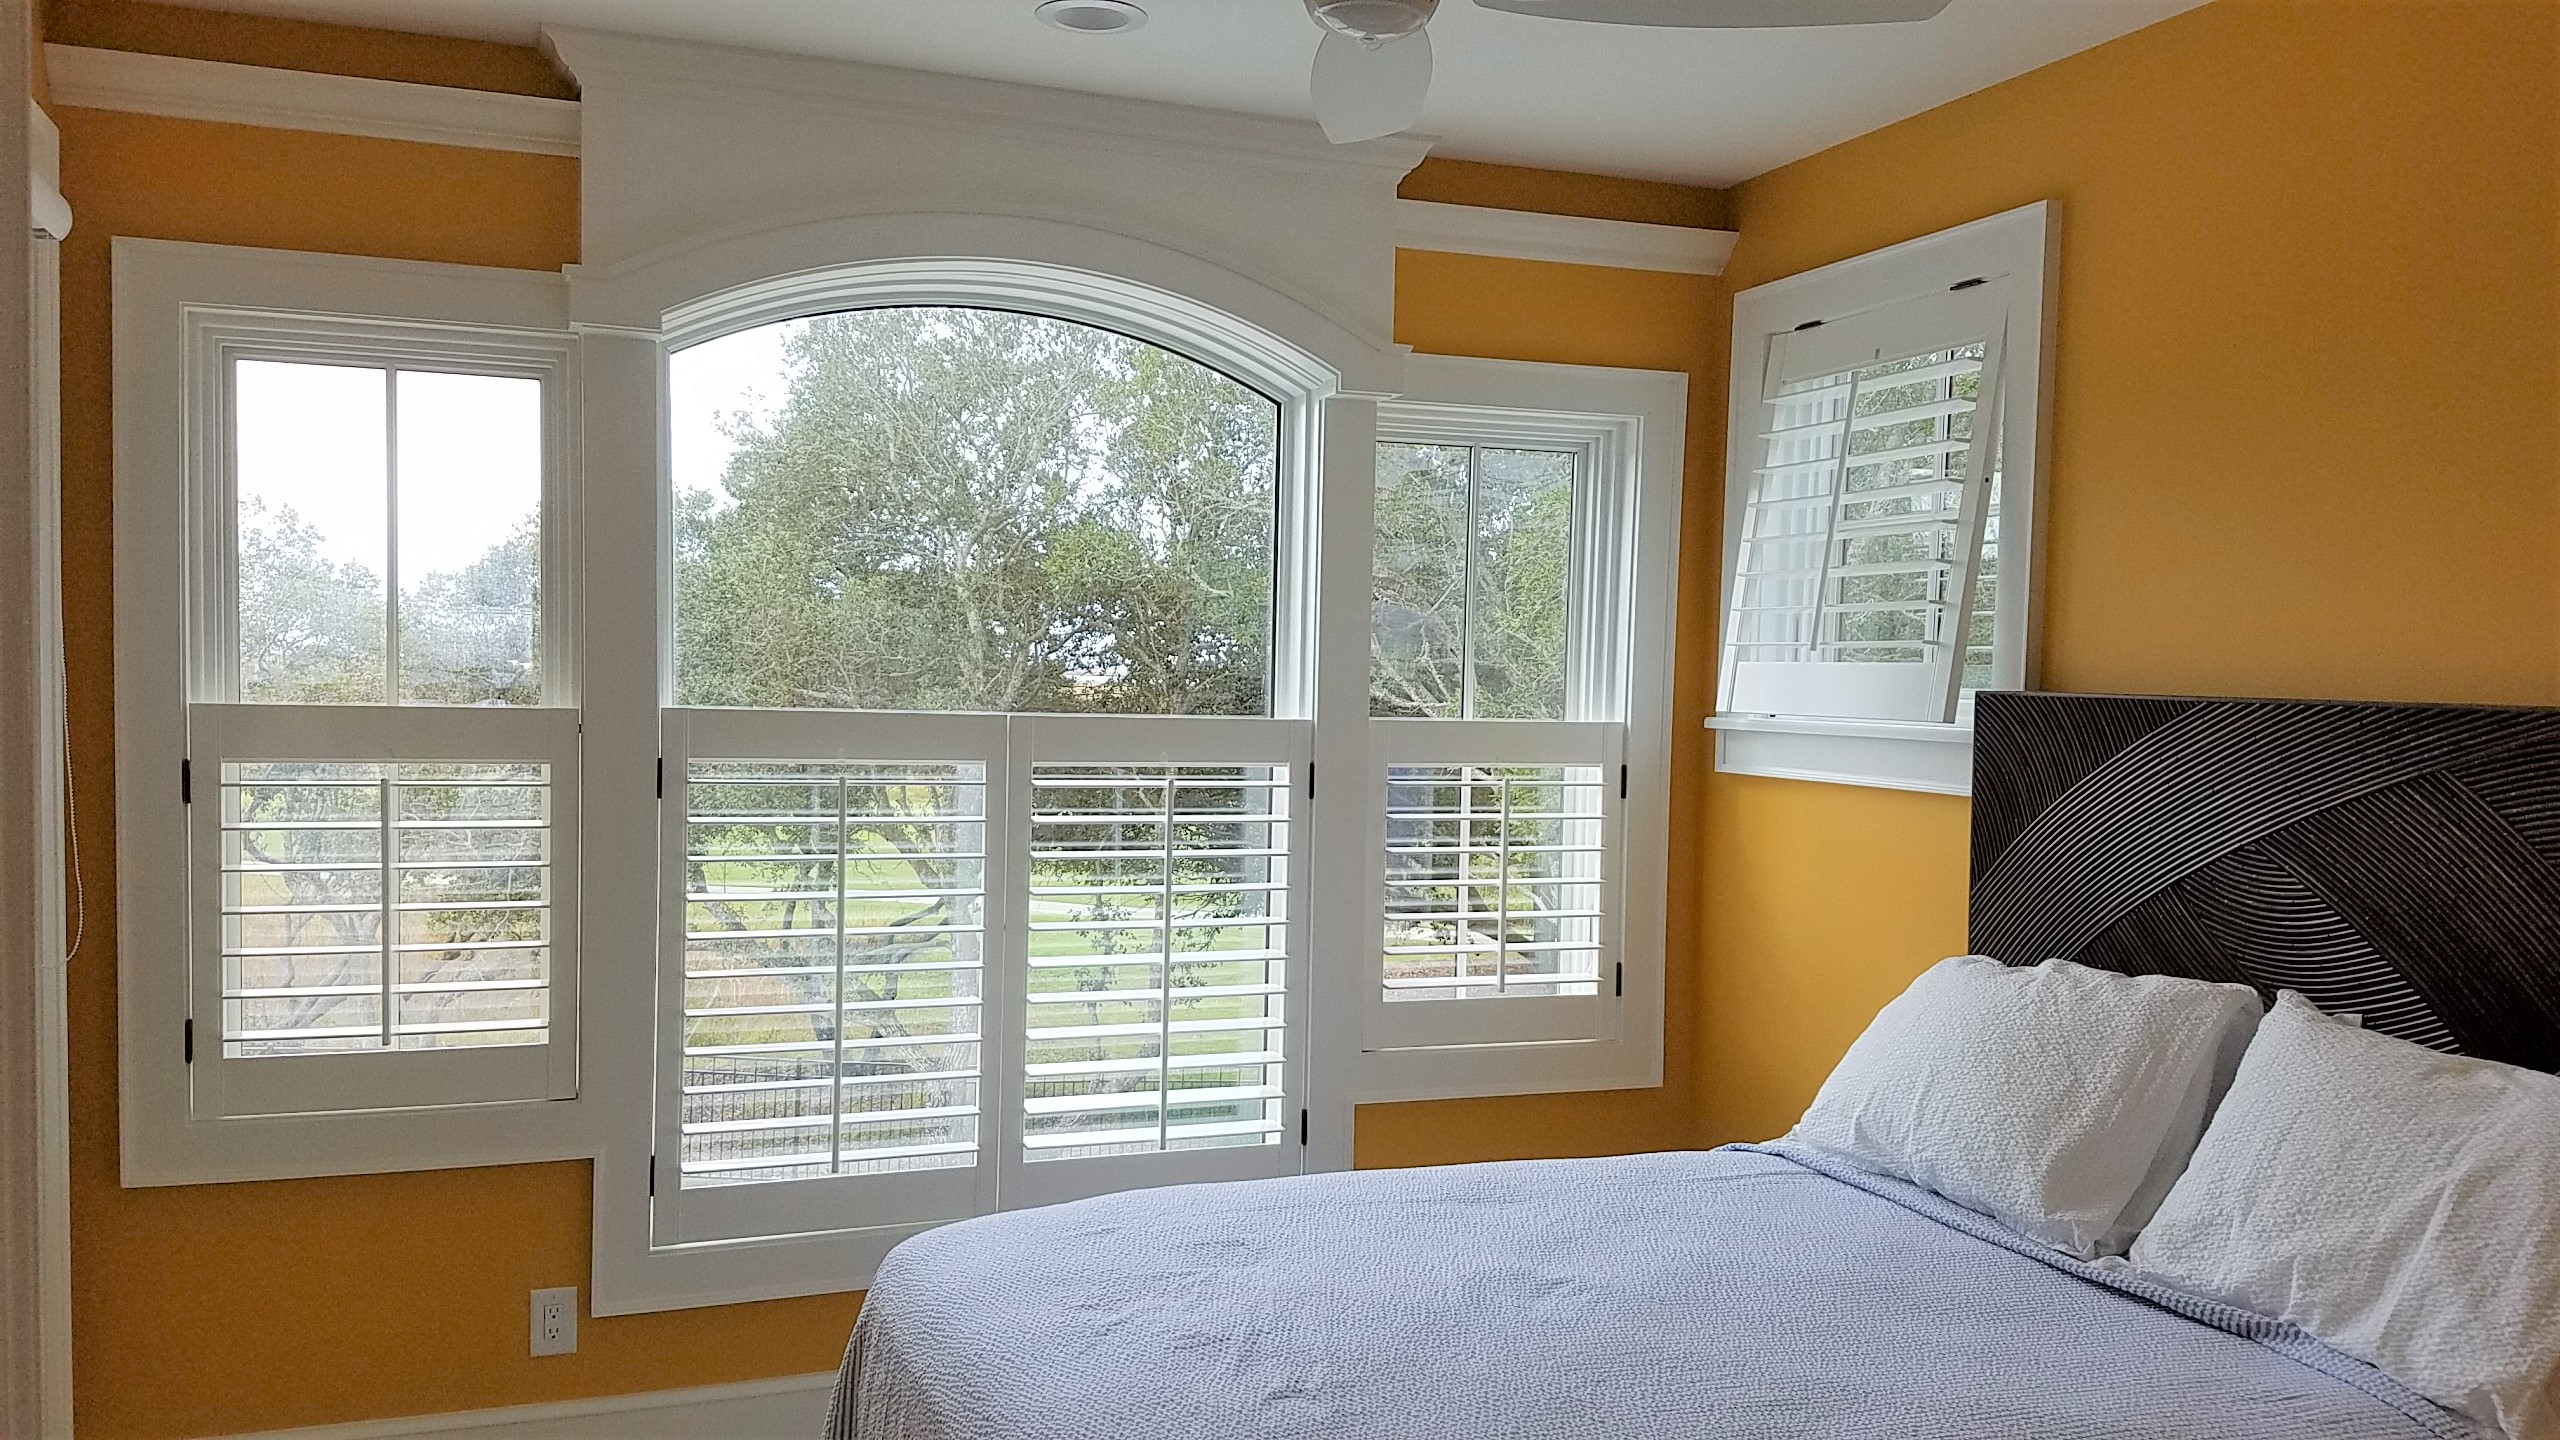 pvc drape louvers interesting win patio blind blinds beautiful louver drapes for cellular curtain myhomedesign vertical